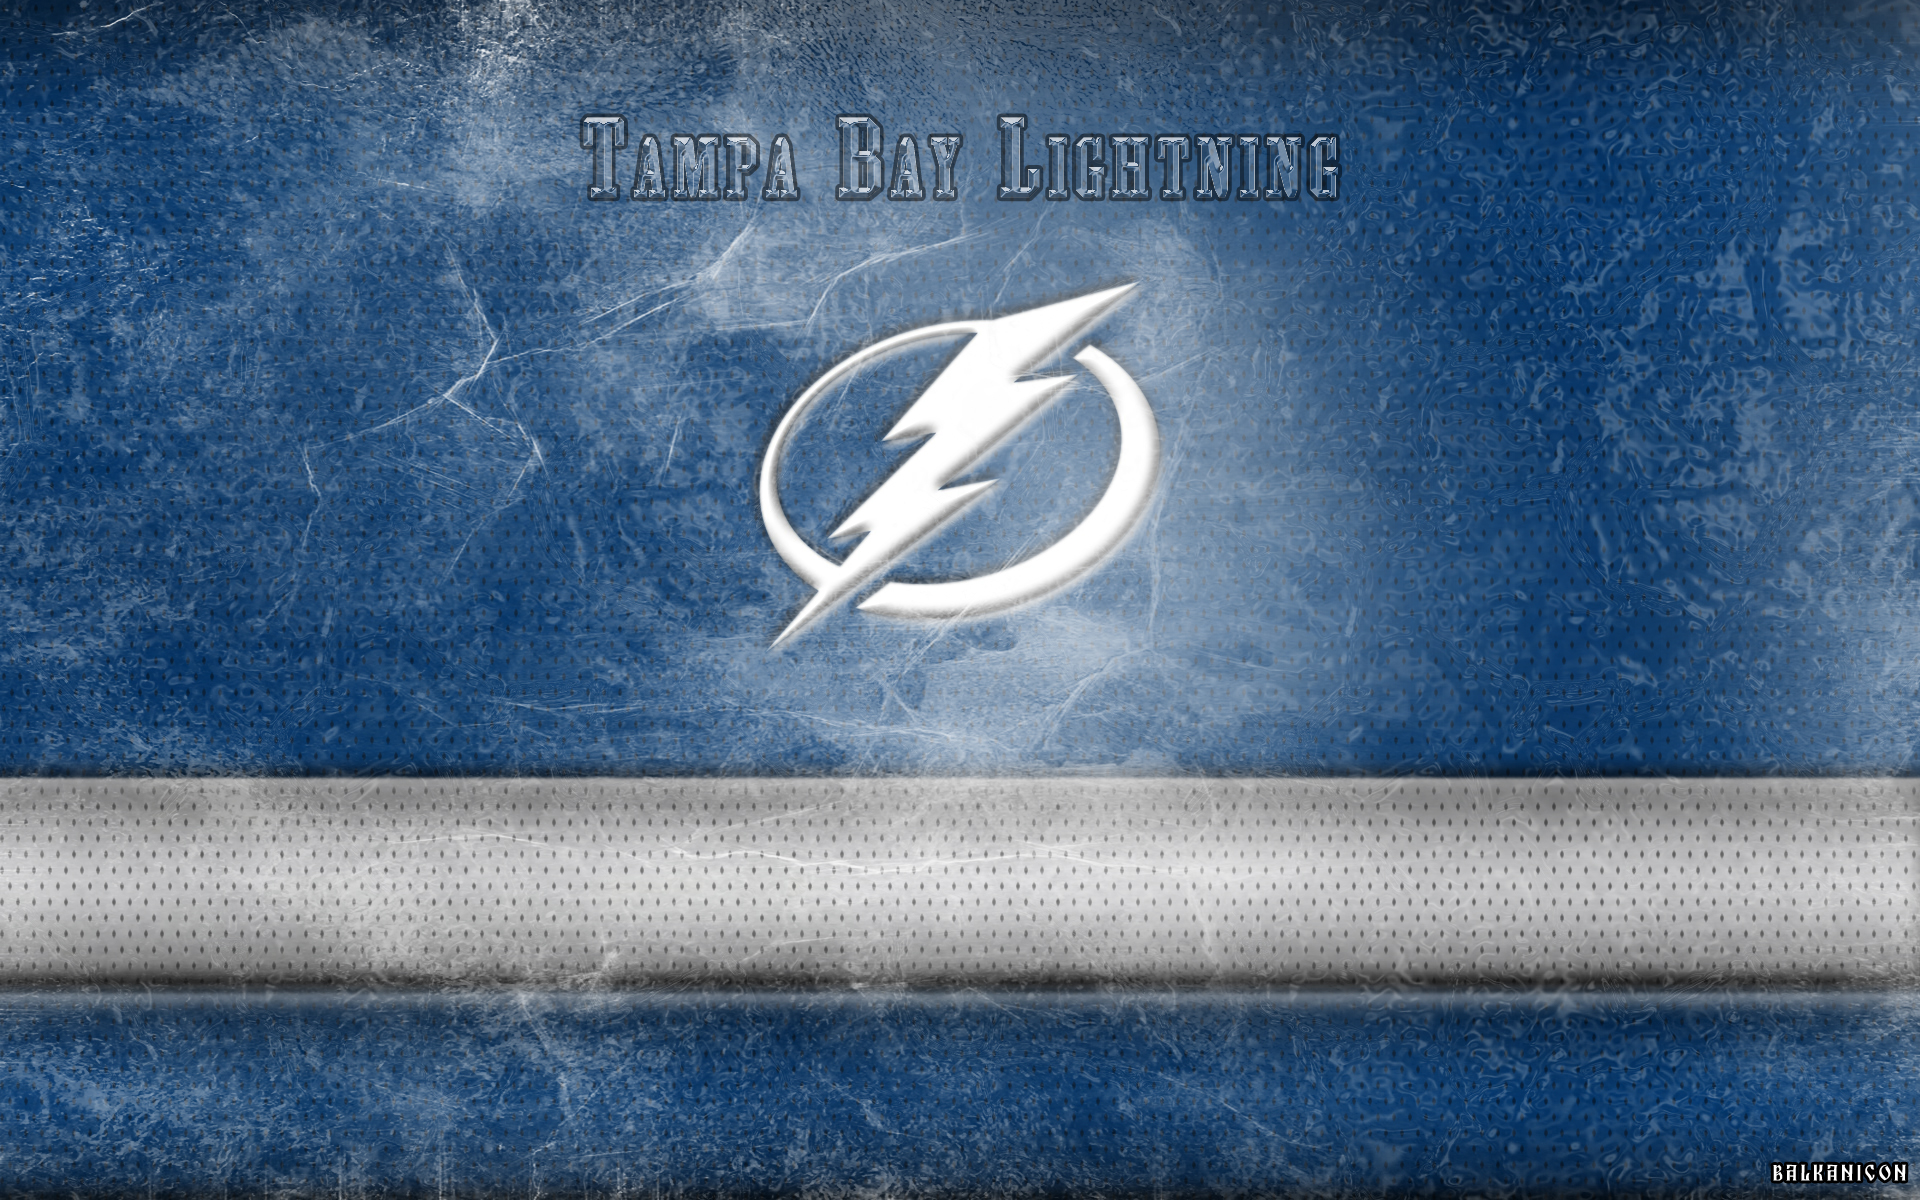 tampa bay lightning wallpaper by balkanicon fan art wallpaper other 1920x1200